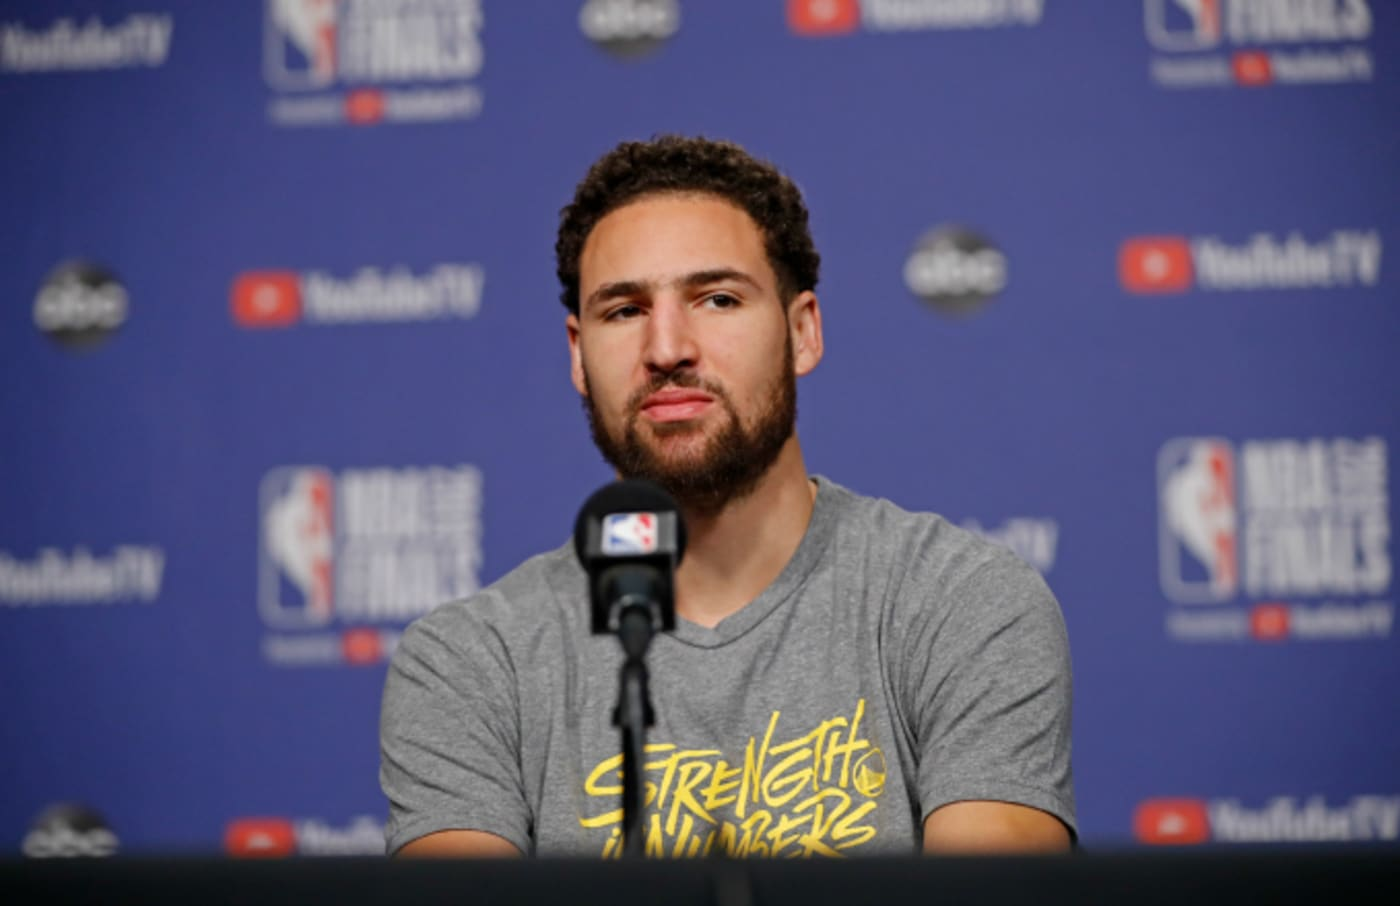 Klay Thompson #11 of the Golden State Warriors answers questions